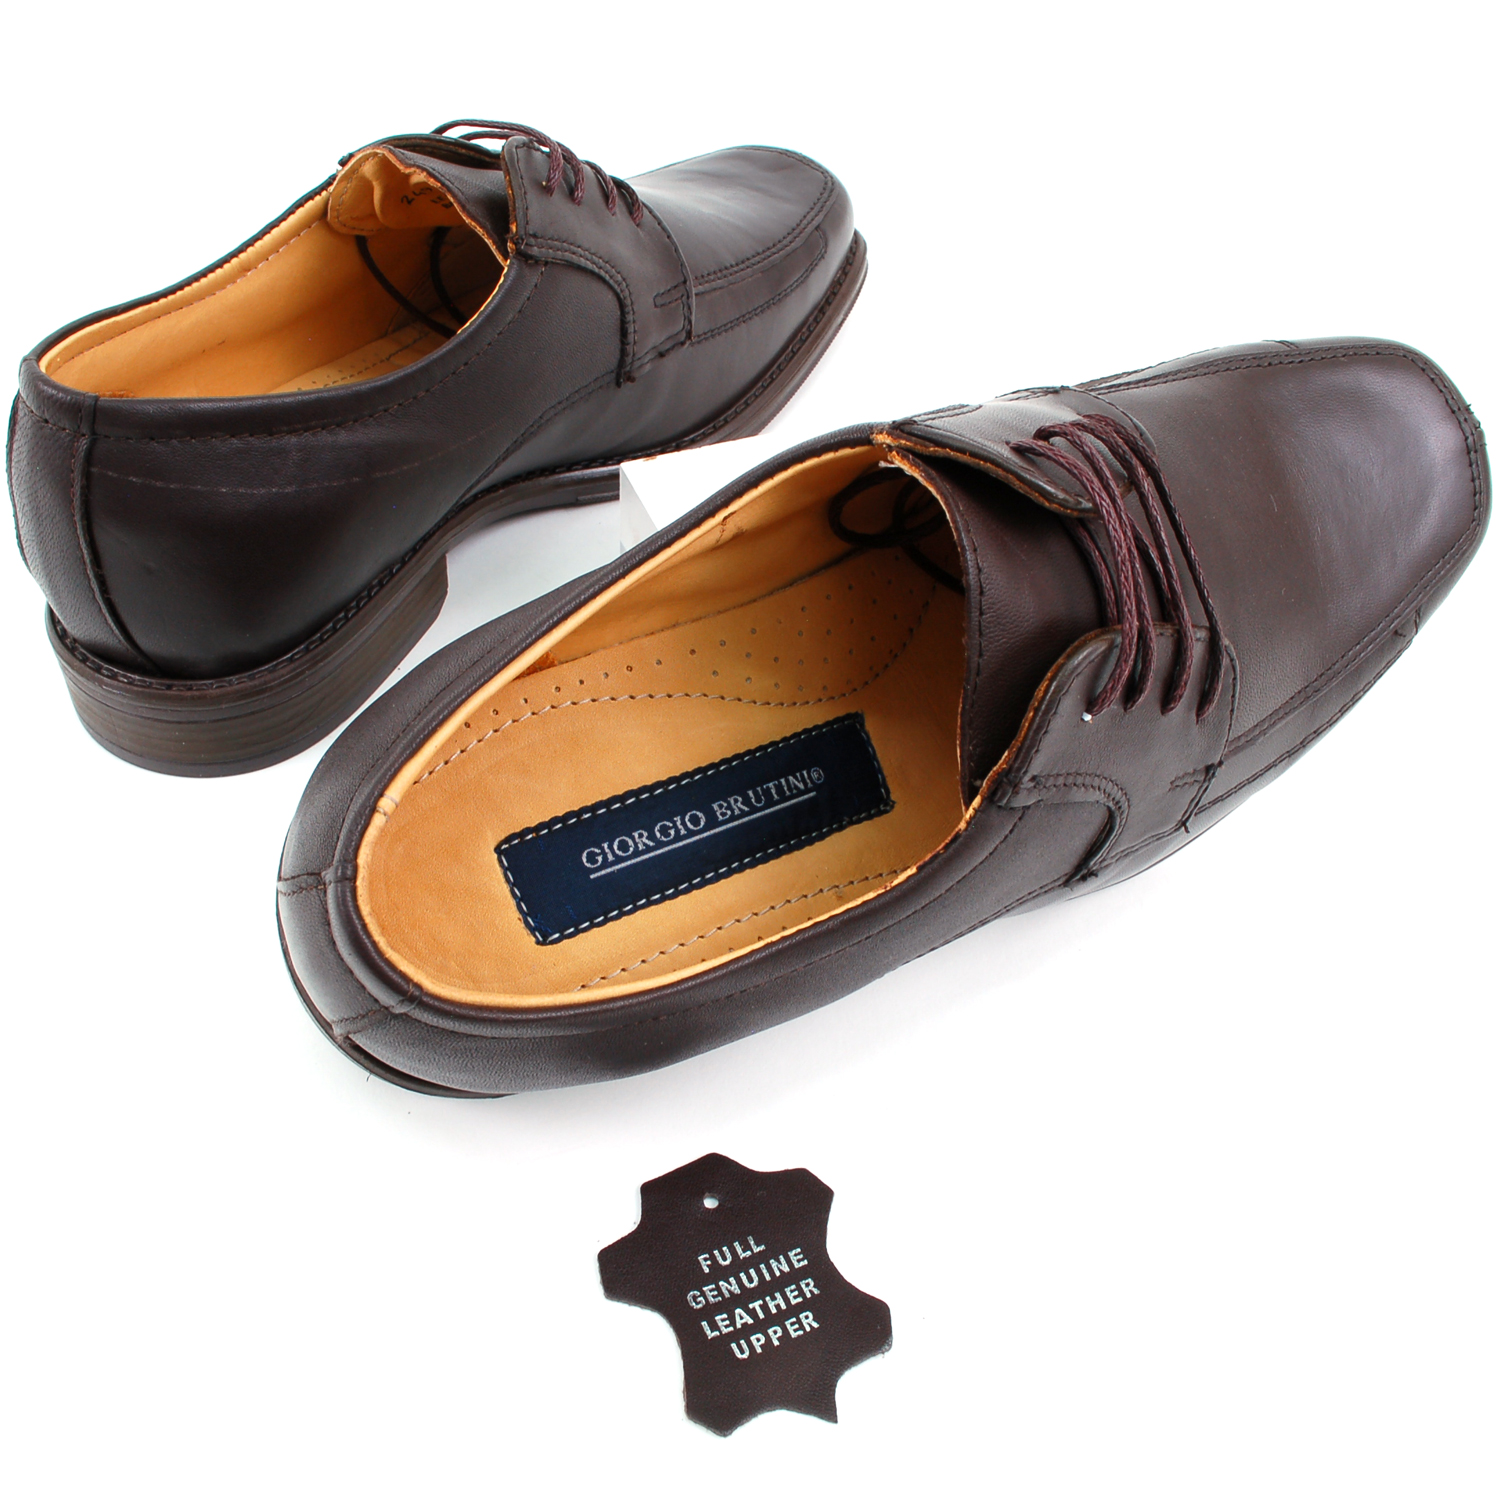 Mens-Lace-Up-Oxfords-Dress-Shoes-Genuine-Leather-Moc-Toe-Giorgio-Brutini-Padded thumbnail 22